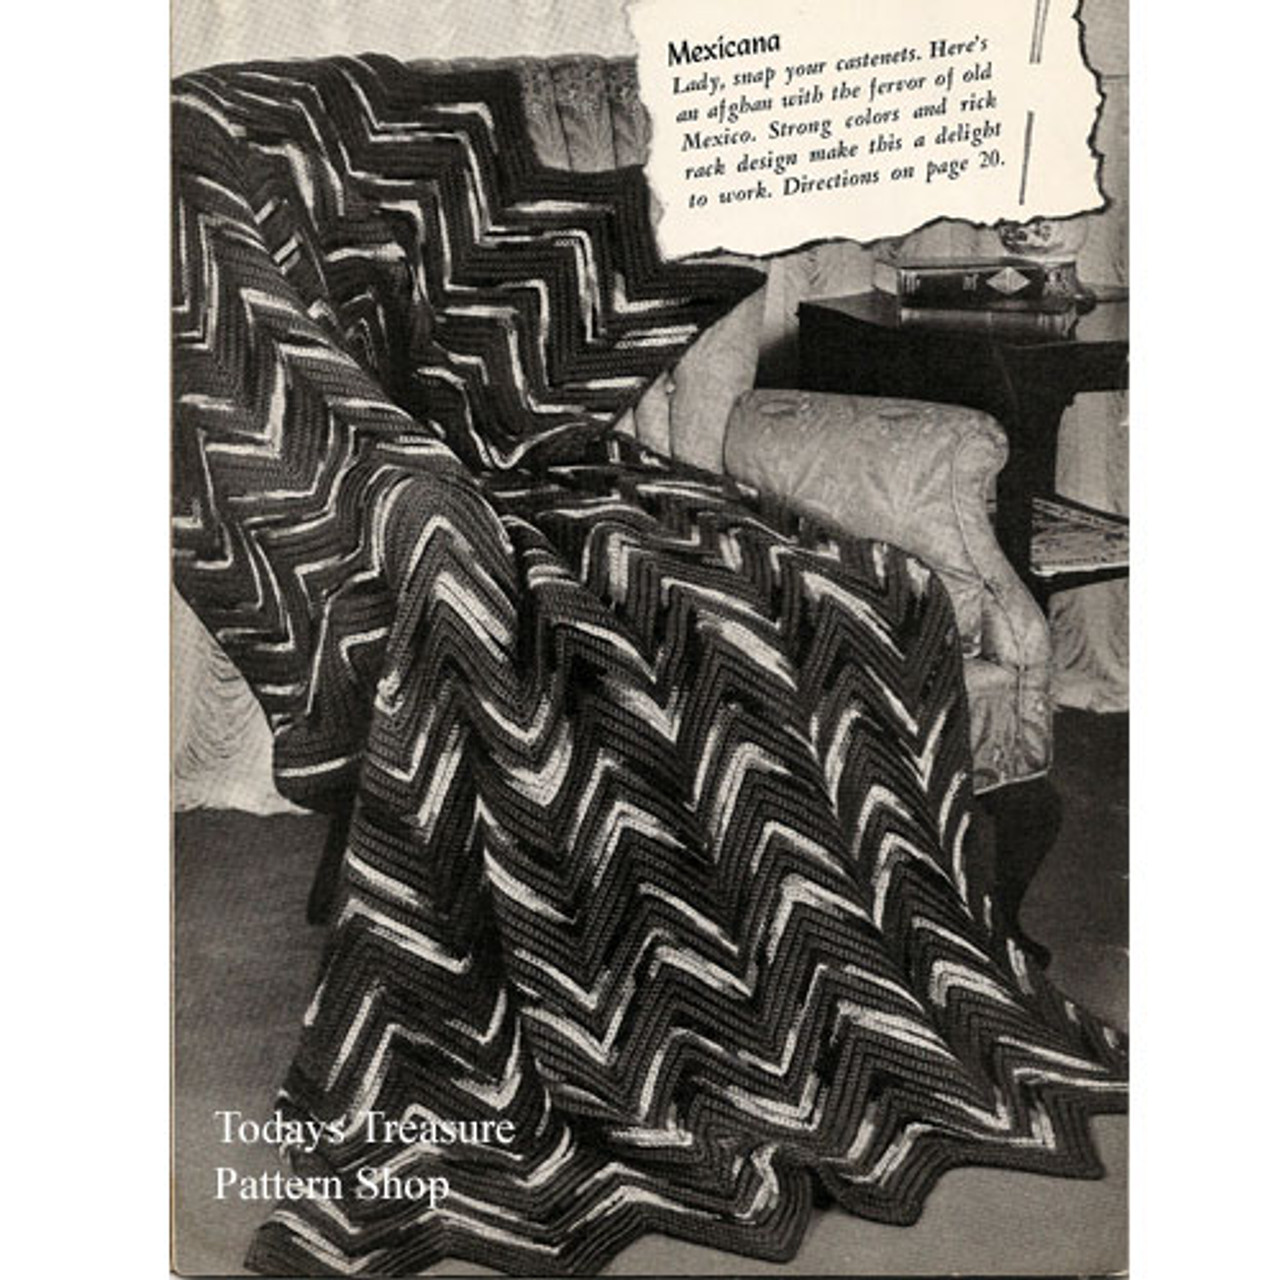 Vintage Geometric Afghan Crochet Pattern called Mexicana